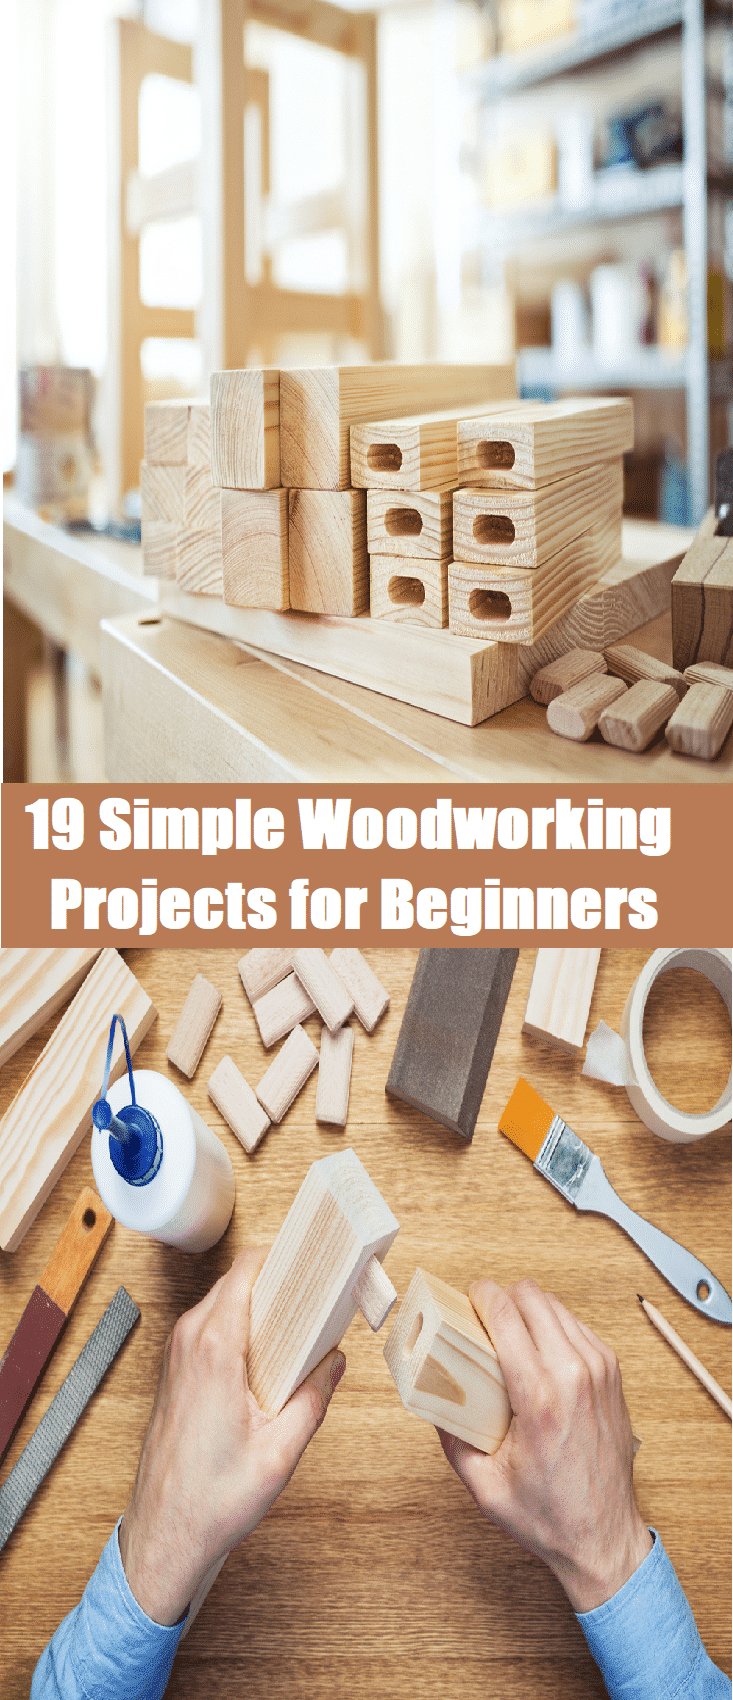 19 Simple Woodworking Projects For Beginners Reclaimed Wood